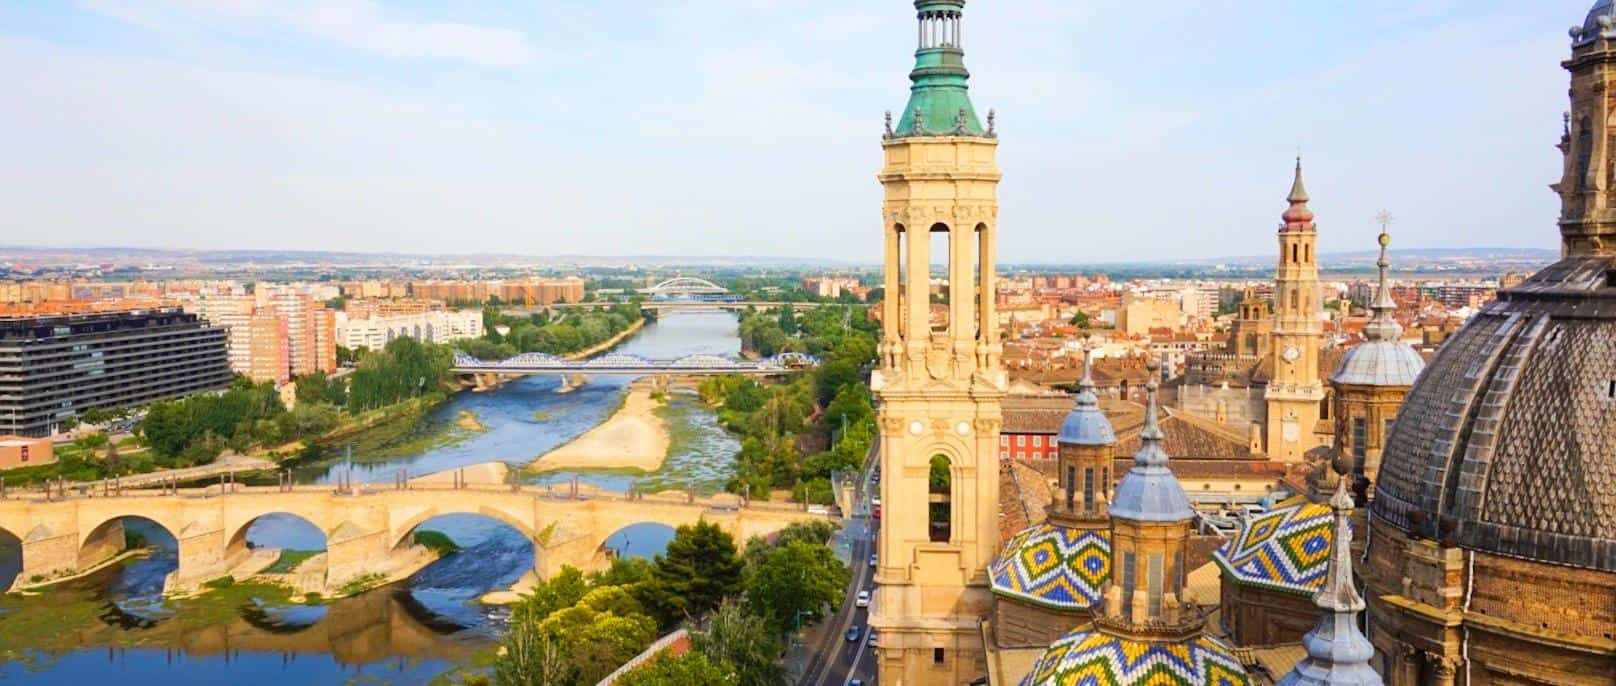 48Hour Guide to the Cultural Spanish City of Zaragoza.